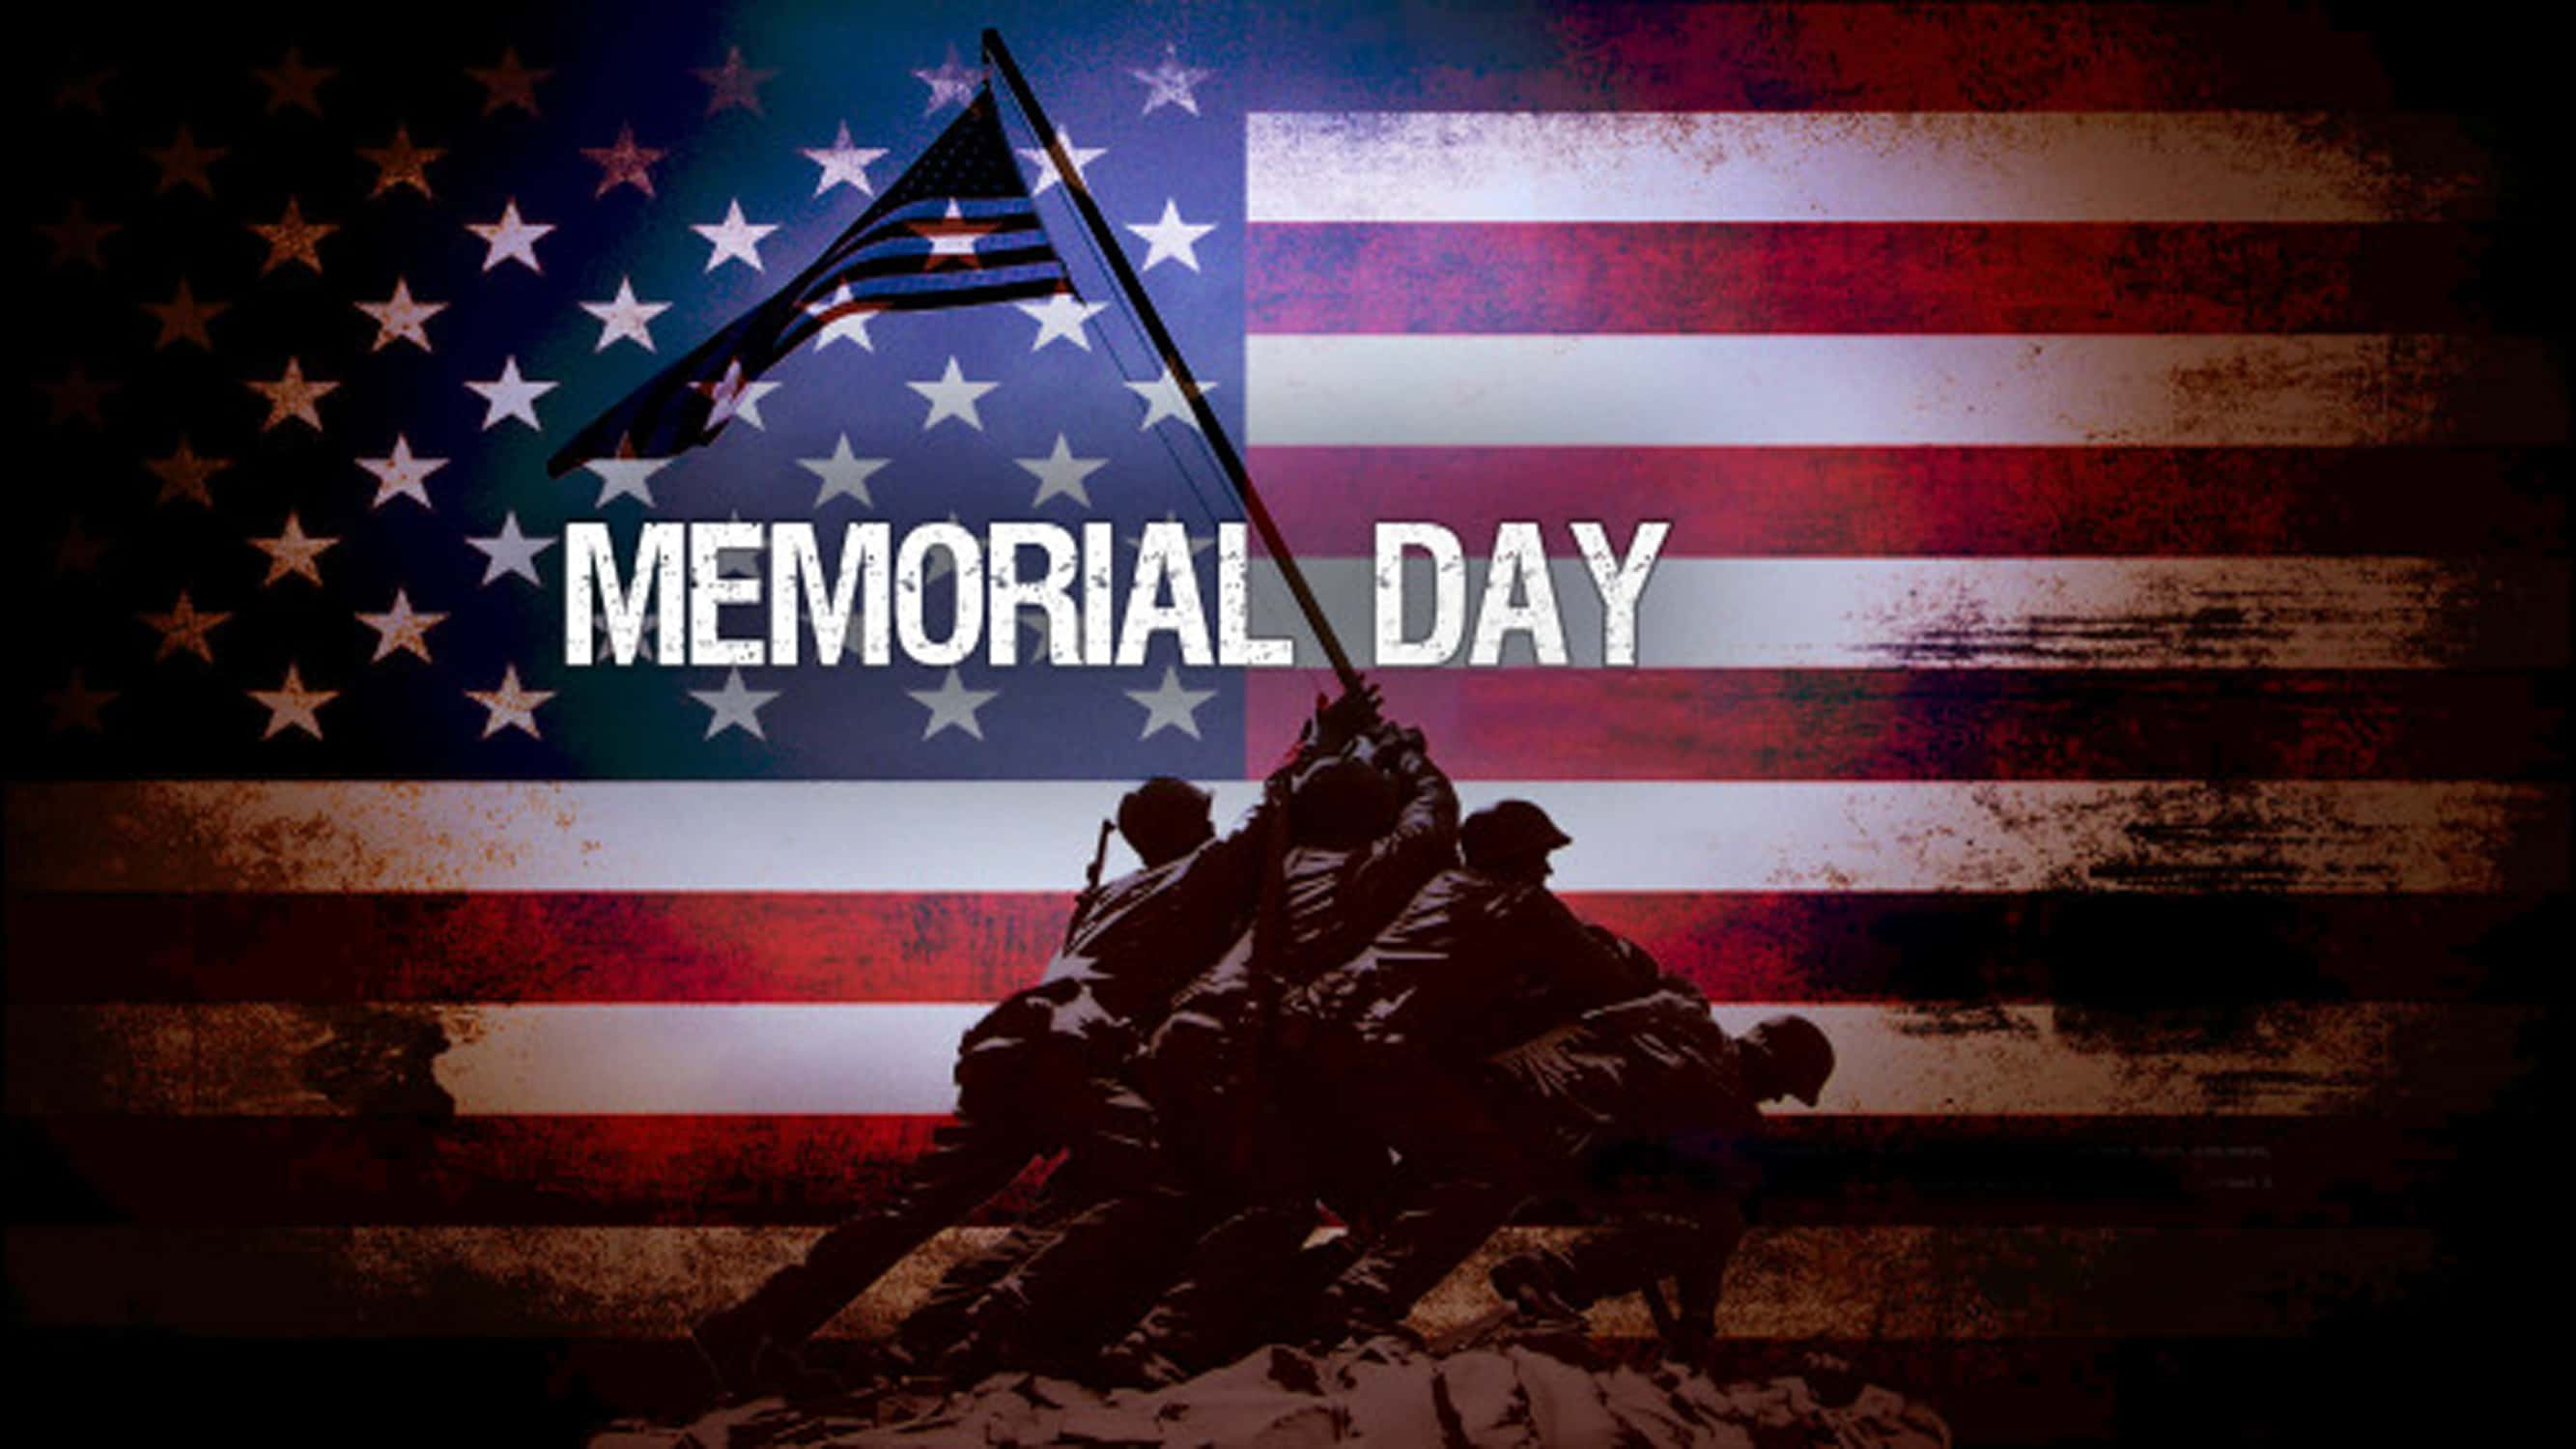 Memorial day poems veterans poems prayers - Memorial Day Tribute Soldiers Poem Kbeq